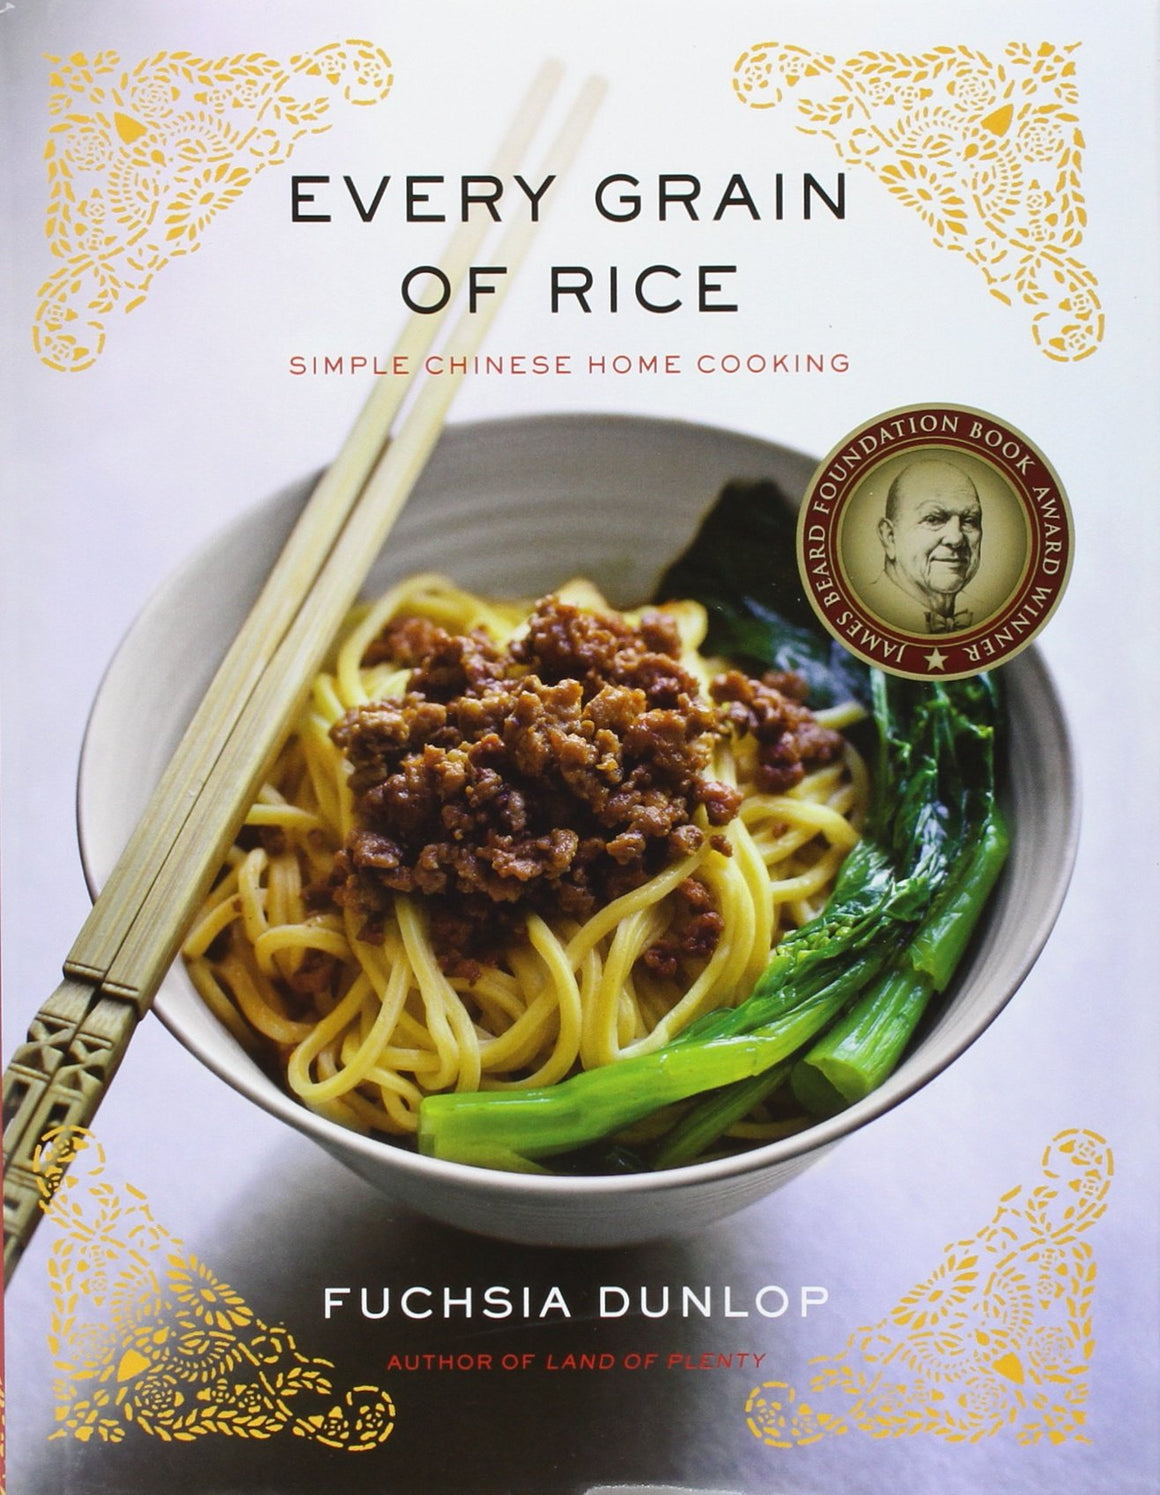 Fuchsia Dunlop. Every Grain of Rice: Simple Chinese Home Cooking.